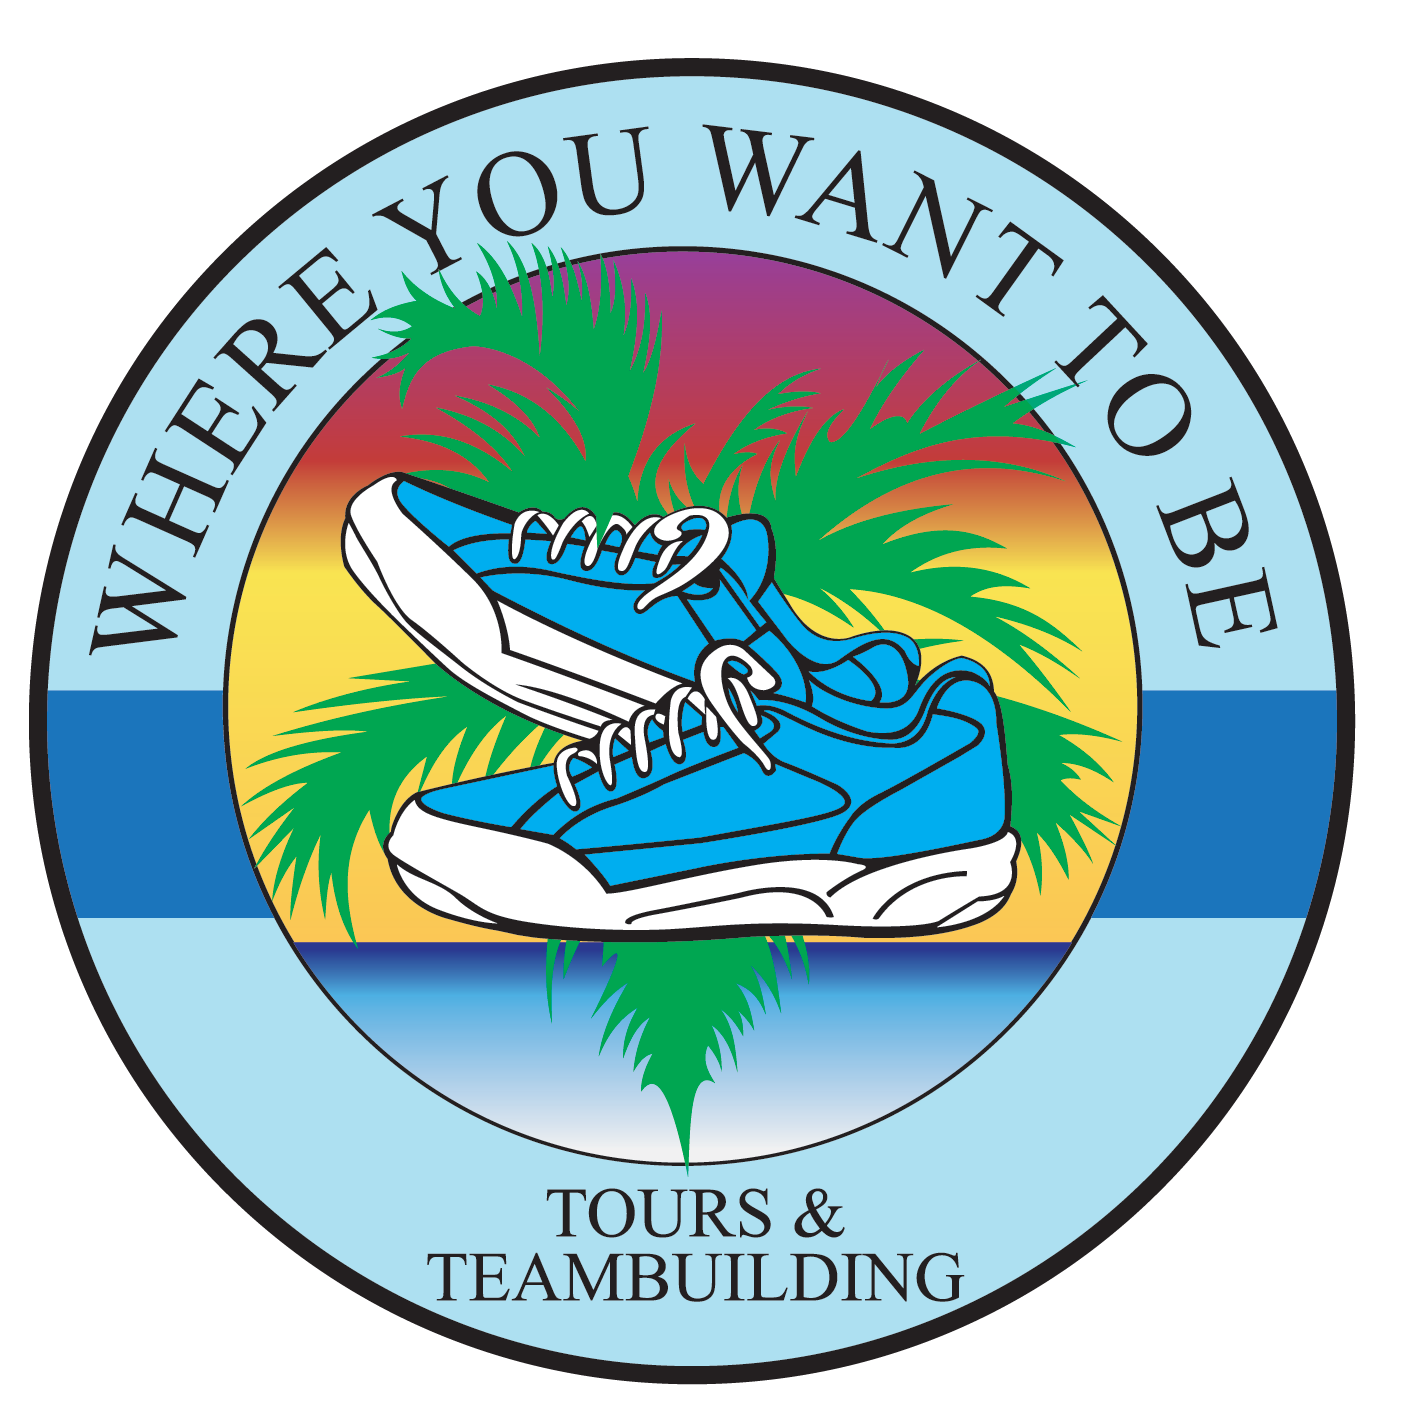 Where You Want To Be - Team Building | Scavenger Hunts